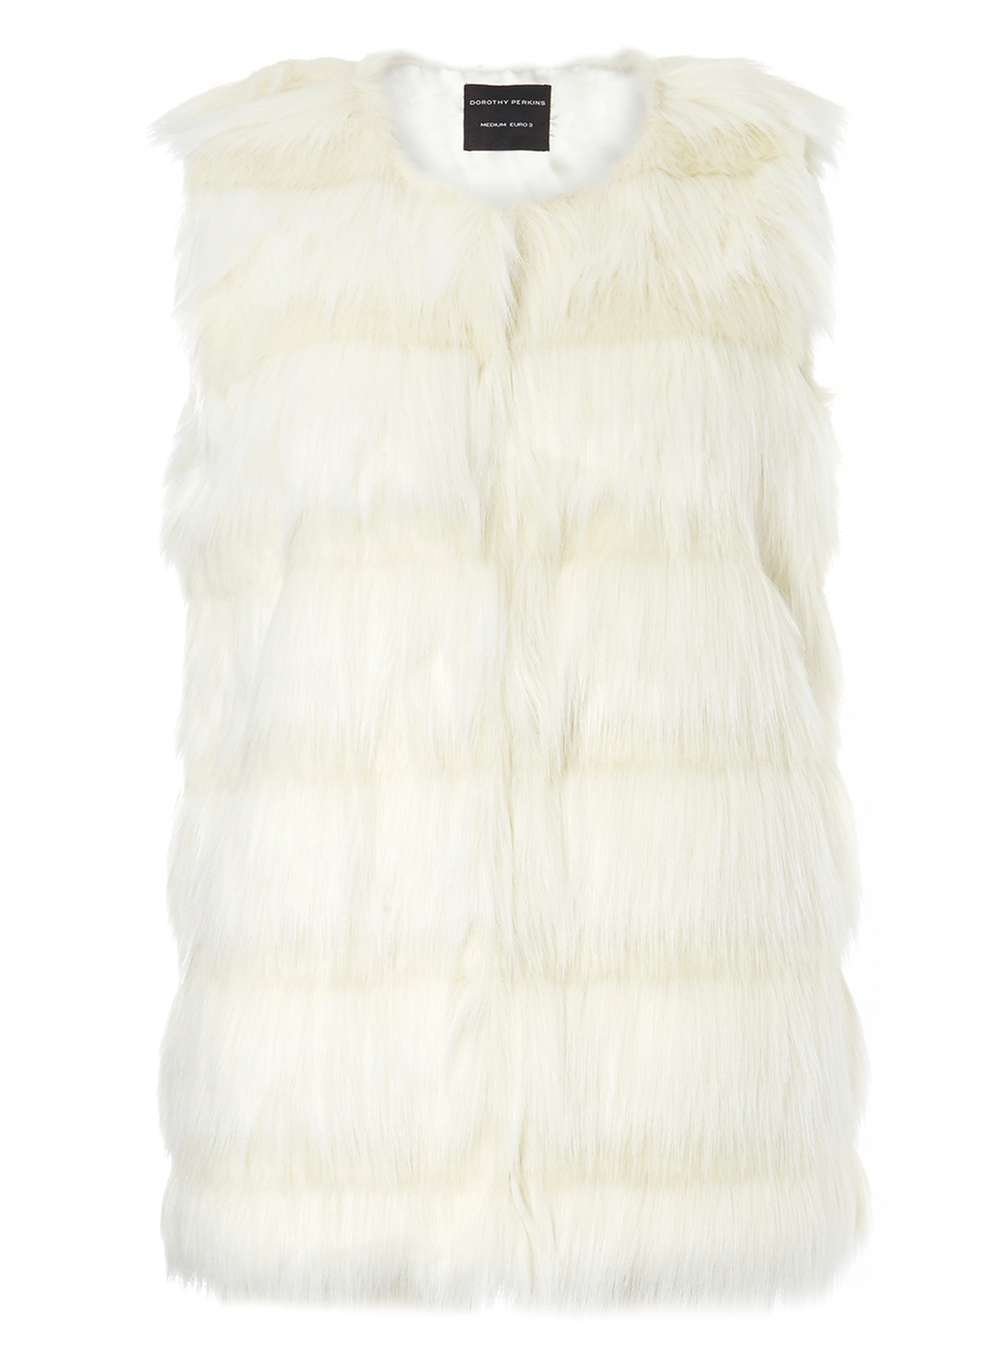 Womens White Carved Gilet White - pattern: plain; sleeve style: sleeveless; style: gilet; collar: round collar/collarless; fit: slim fit; predominant colour: white; occasions: casual, creative work; length: standard; fibres: acrylic - mix; sleeve length: sleeveless; texture group: fur; collar break: high; pattern type: fabric; season: a/w 2016